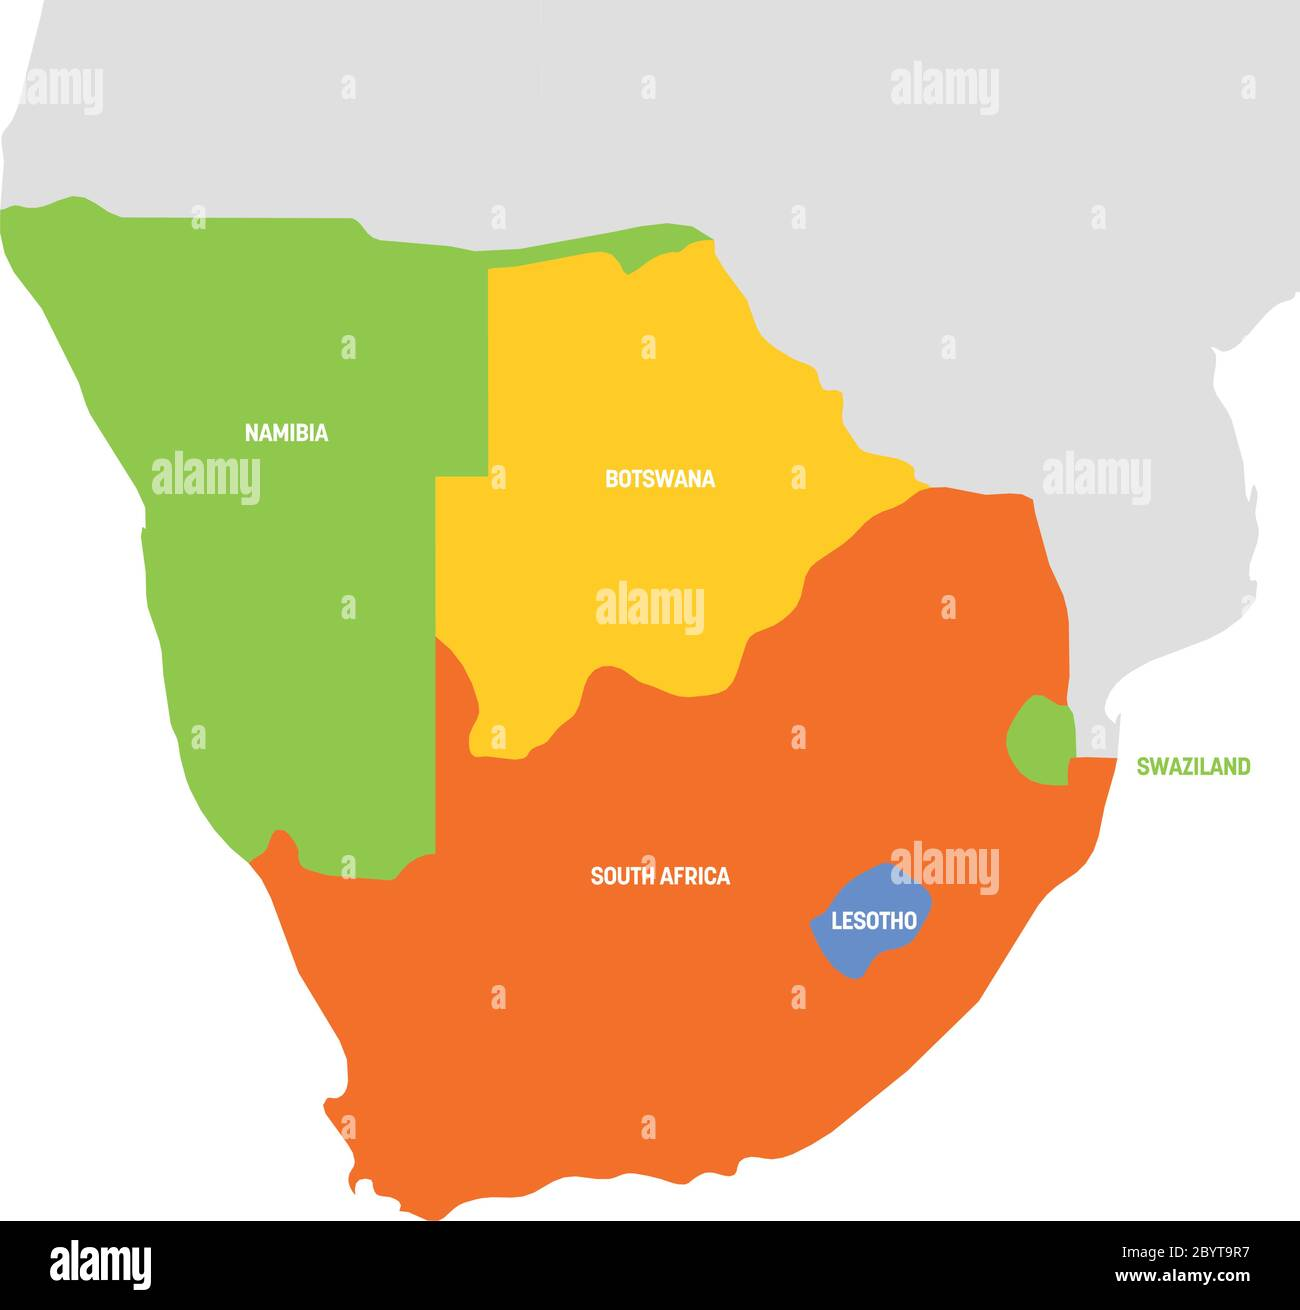 Map Of Southern Africa Countries South Africa Region. Map of countries in southern Africa. Vector